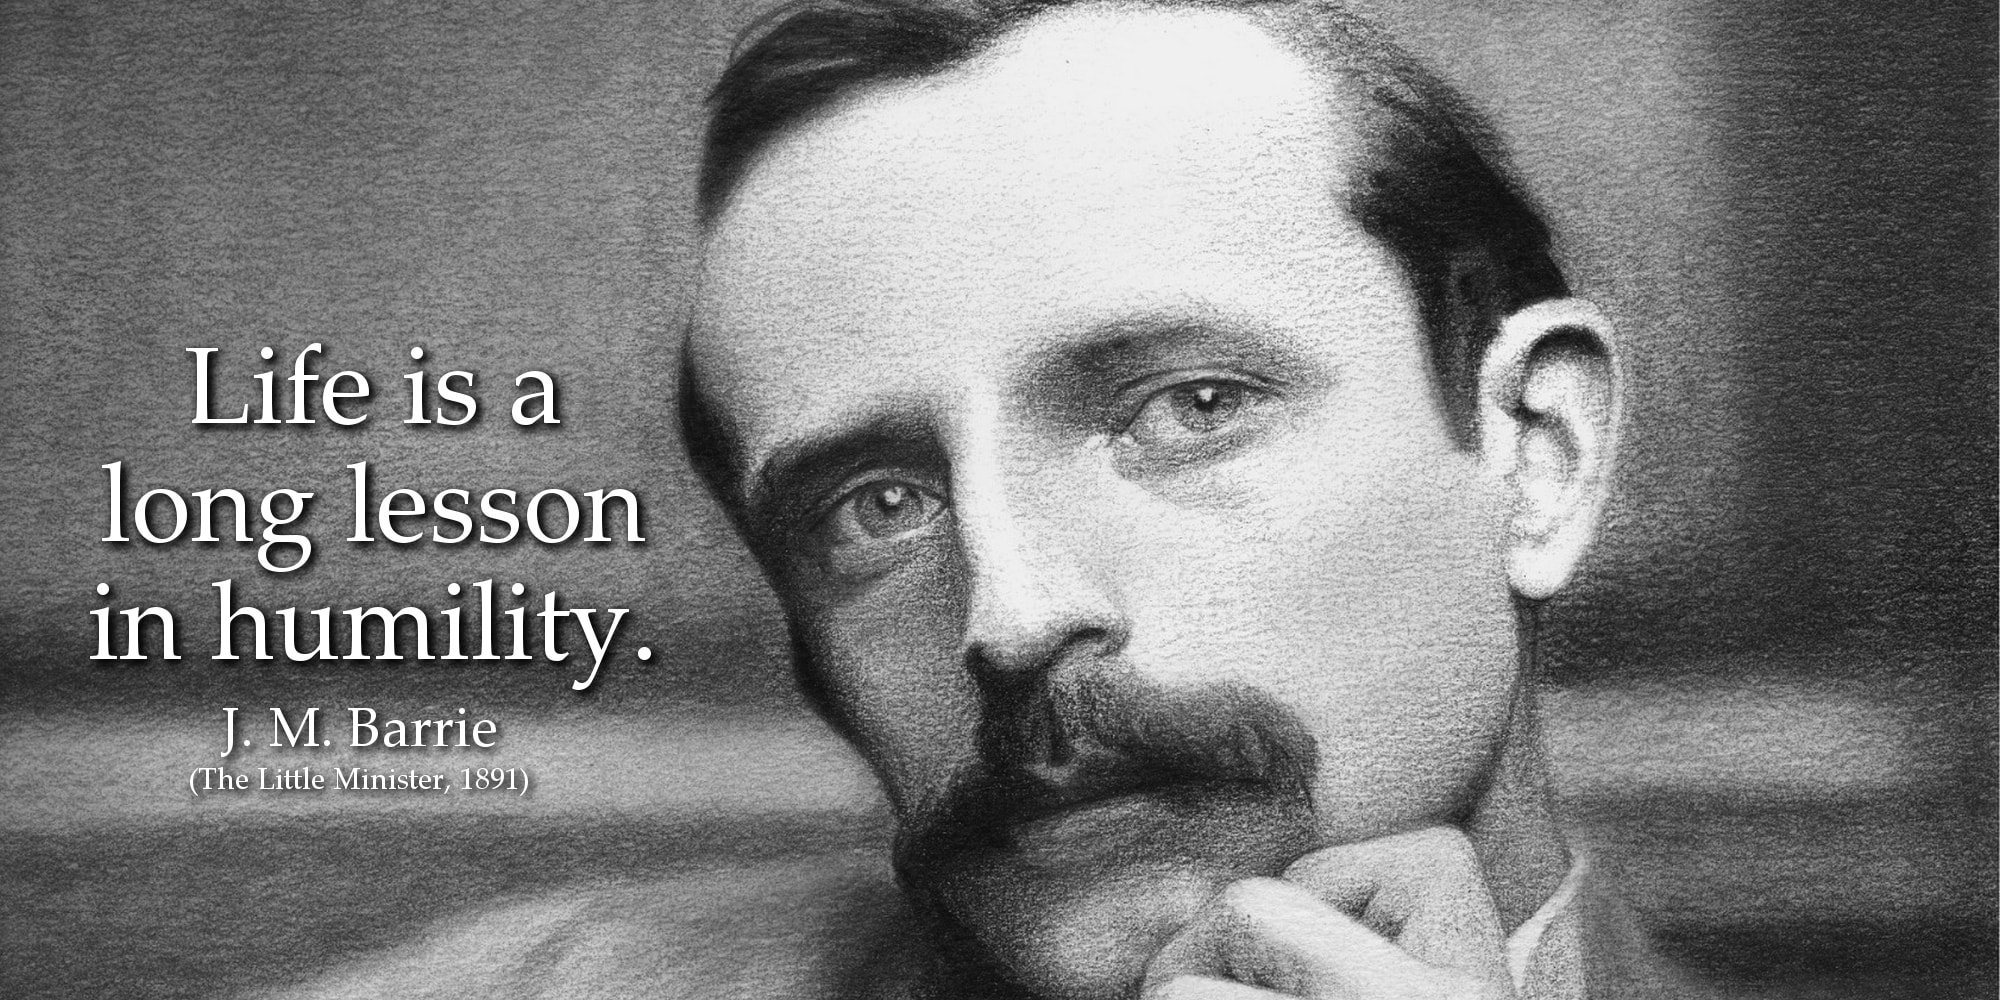 J. M. Barrie Quote: Life is a long lesson in humility.